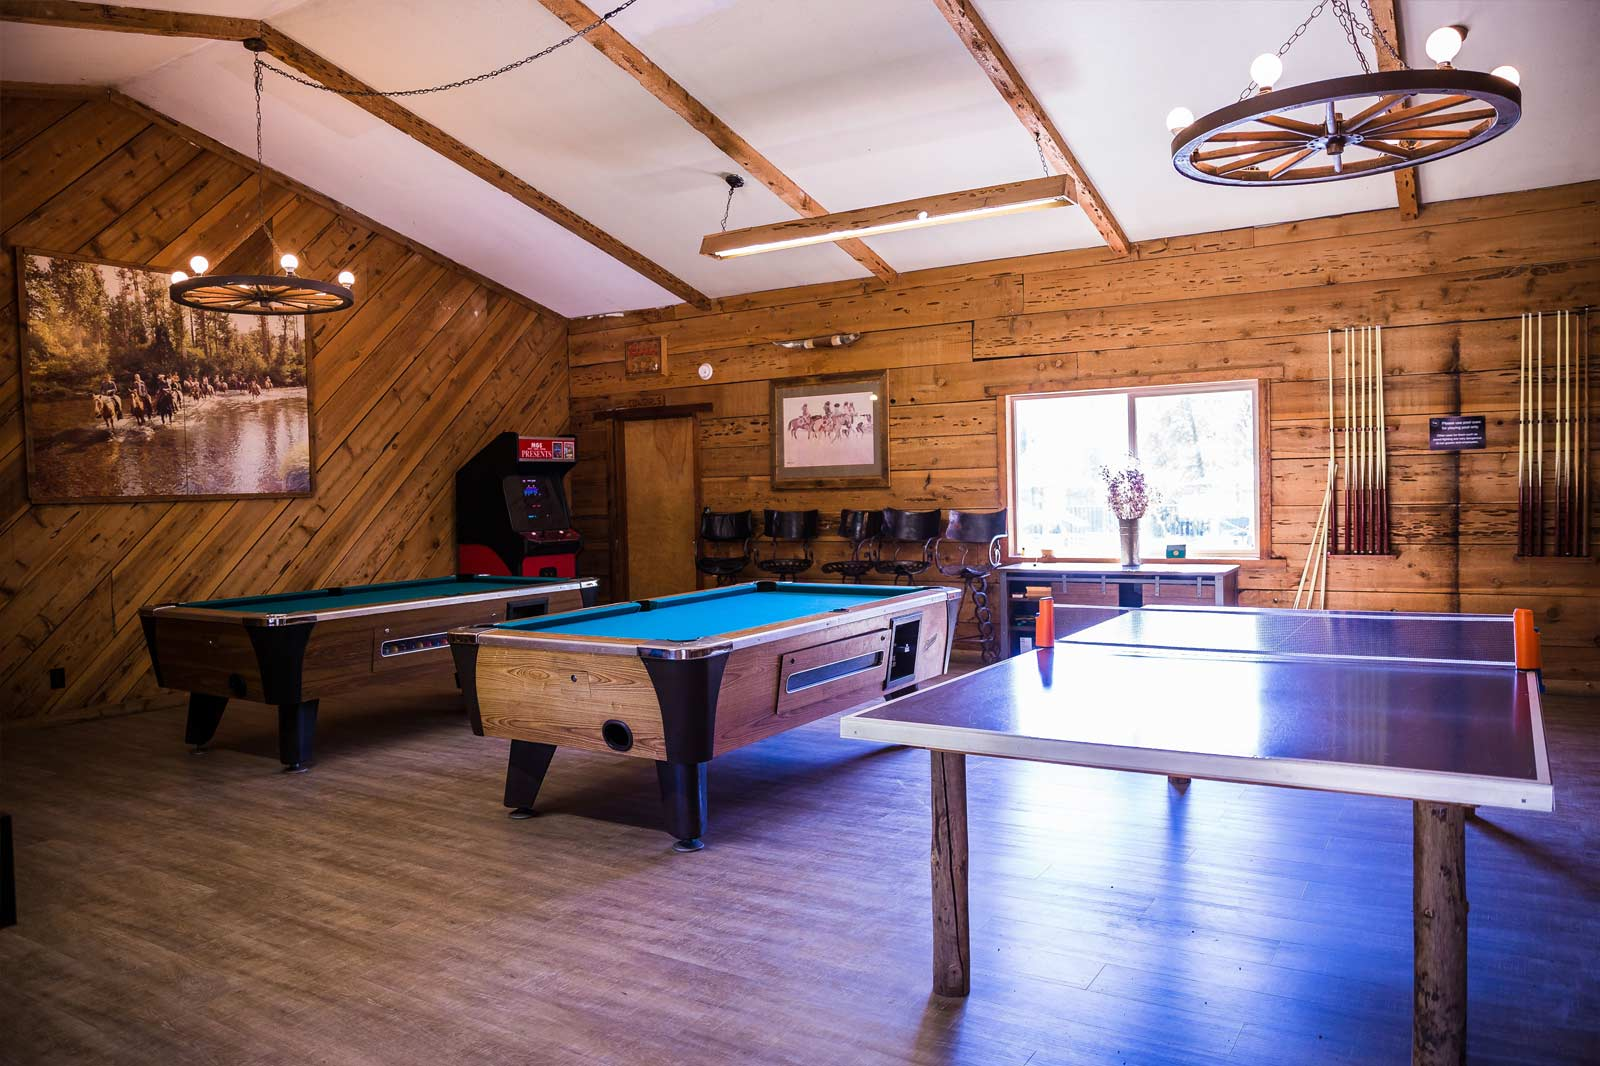 Pool tables and a ping pong table in the Saloon at Greenhorn Ranch